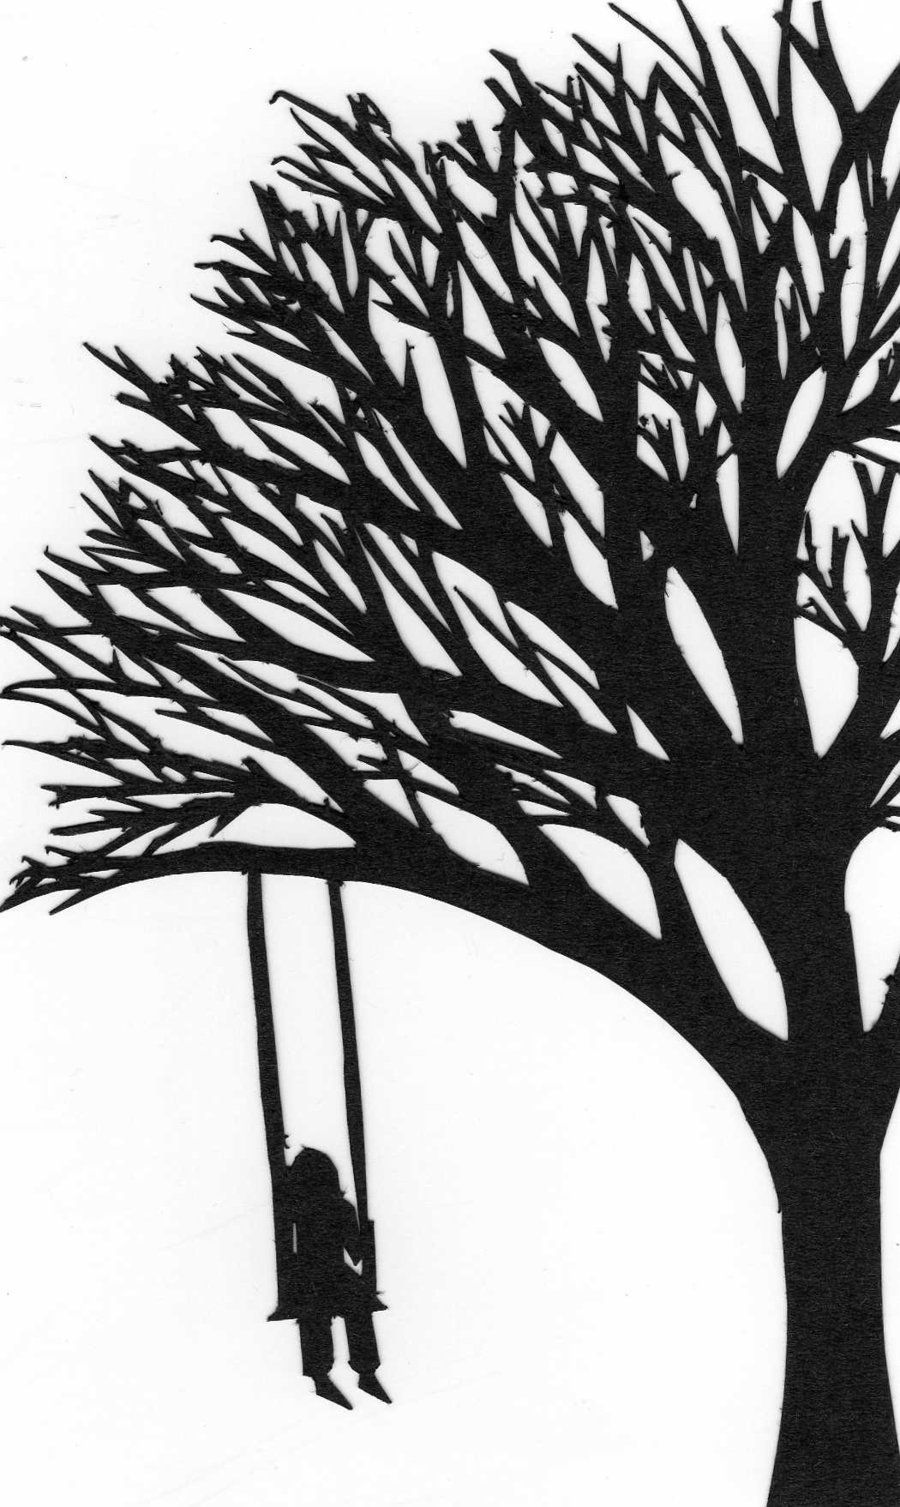 900x1507 Paper Cut Out Tree by Kat2805 on DeviantArt